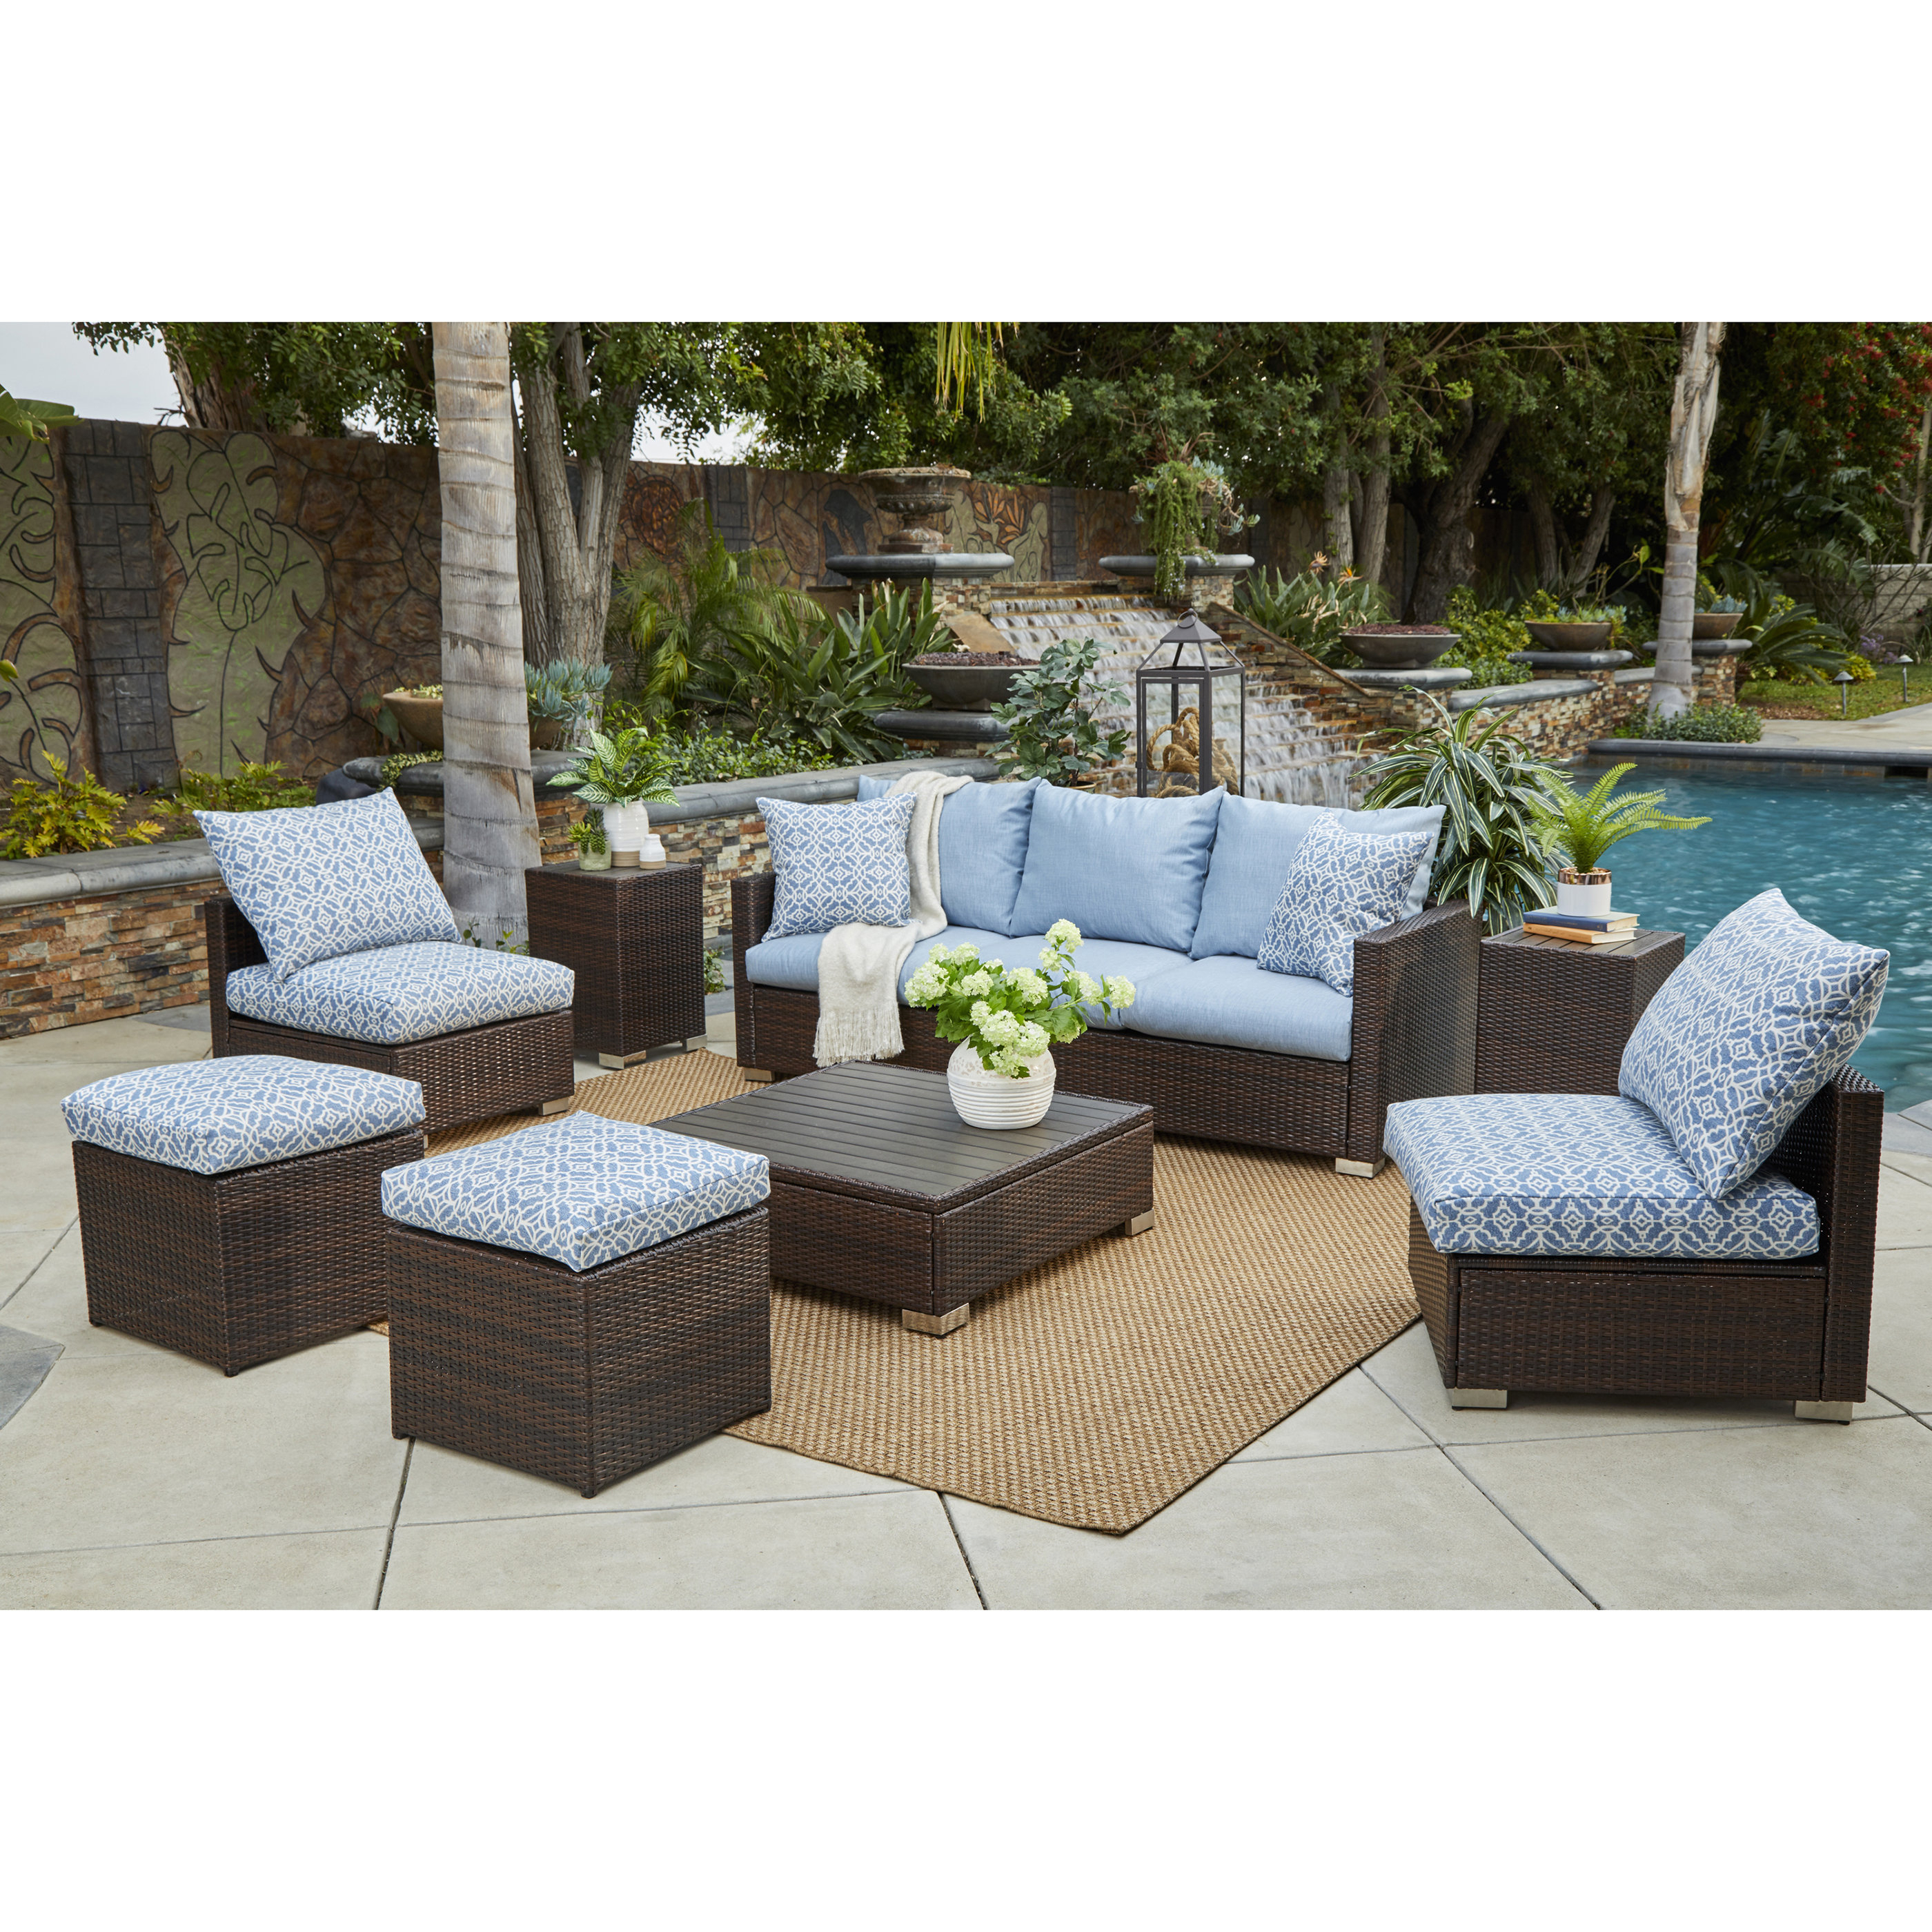 Mcmanis 8 Piece Rattan Sofa Seating Group With Sunbrella Cushions Regarding Most Popular Mcmanis Patio Sofas With Cushion (View 9 of 20)